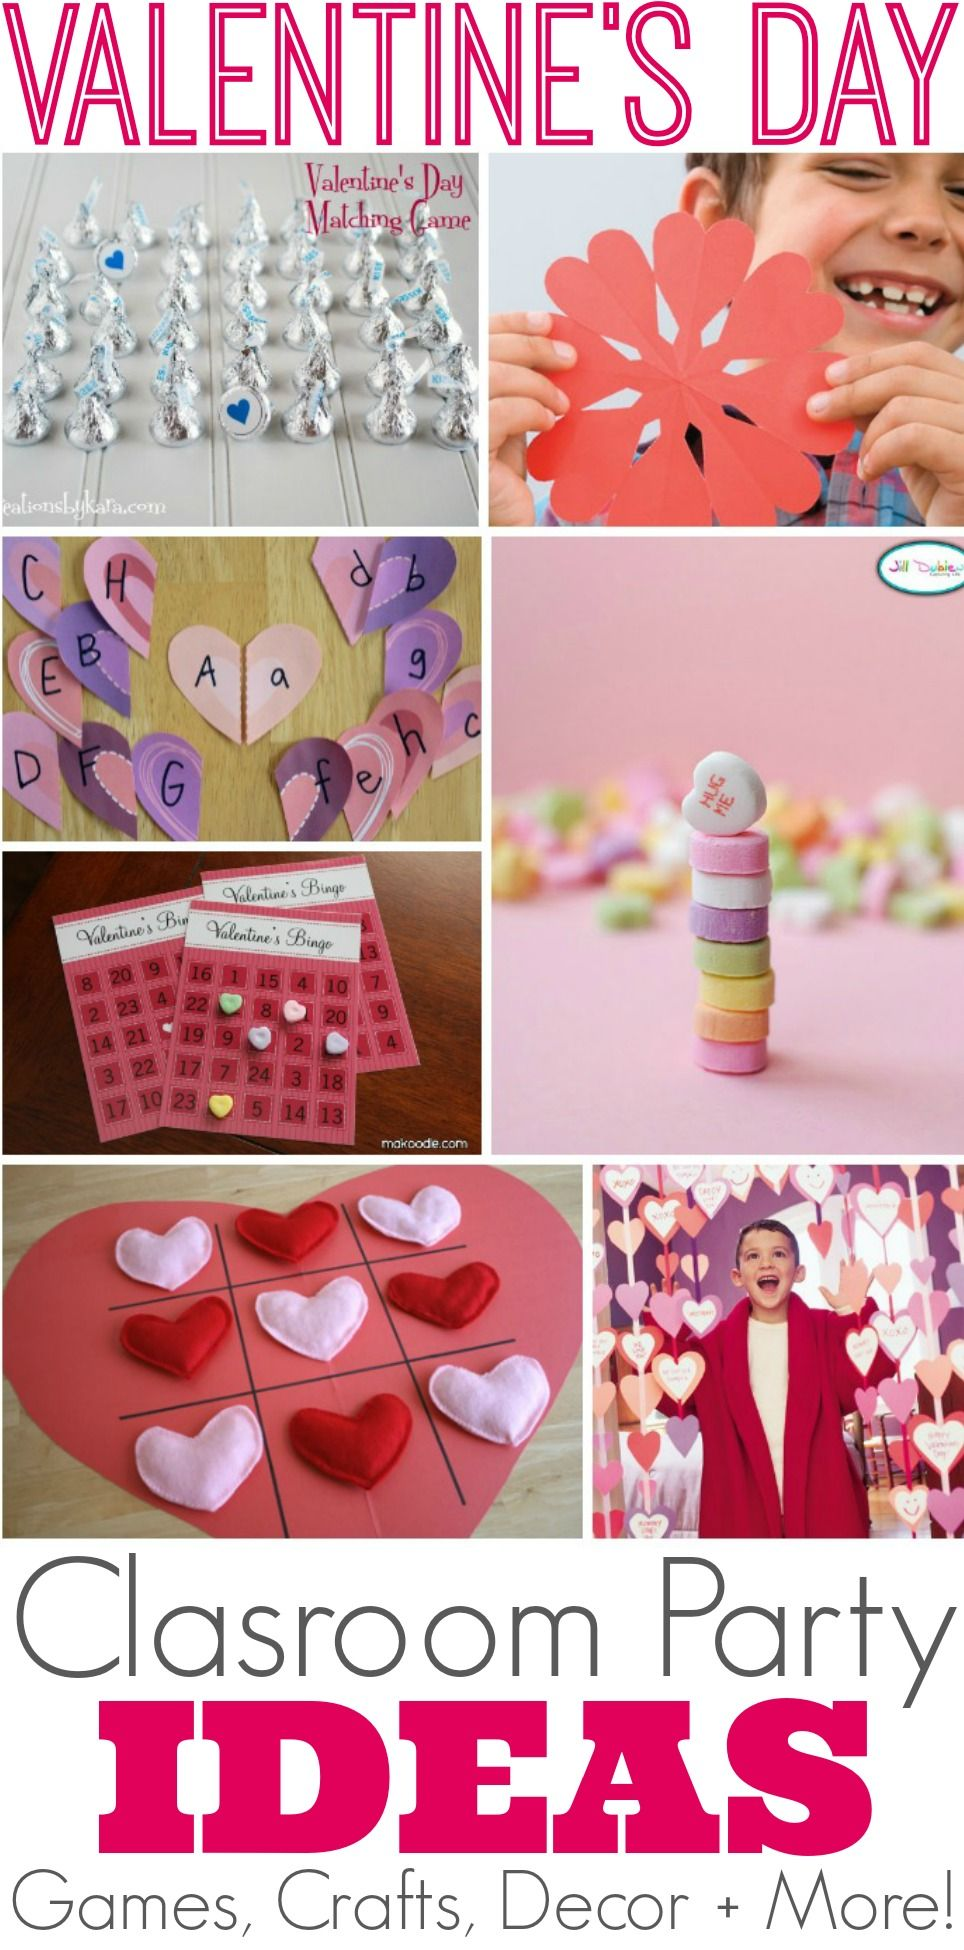 Classroom Birthday Party ~ Class party ideas on pinterest classroom